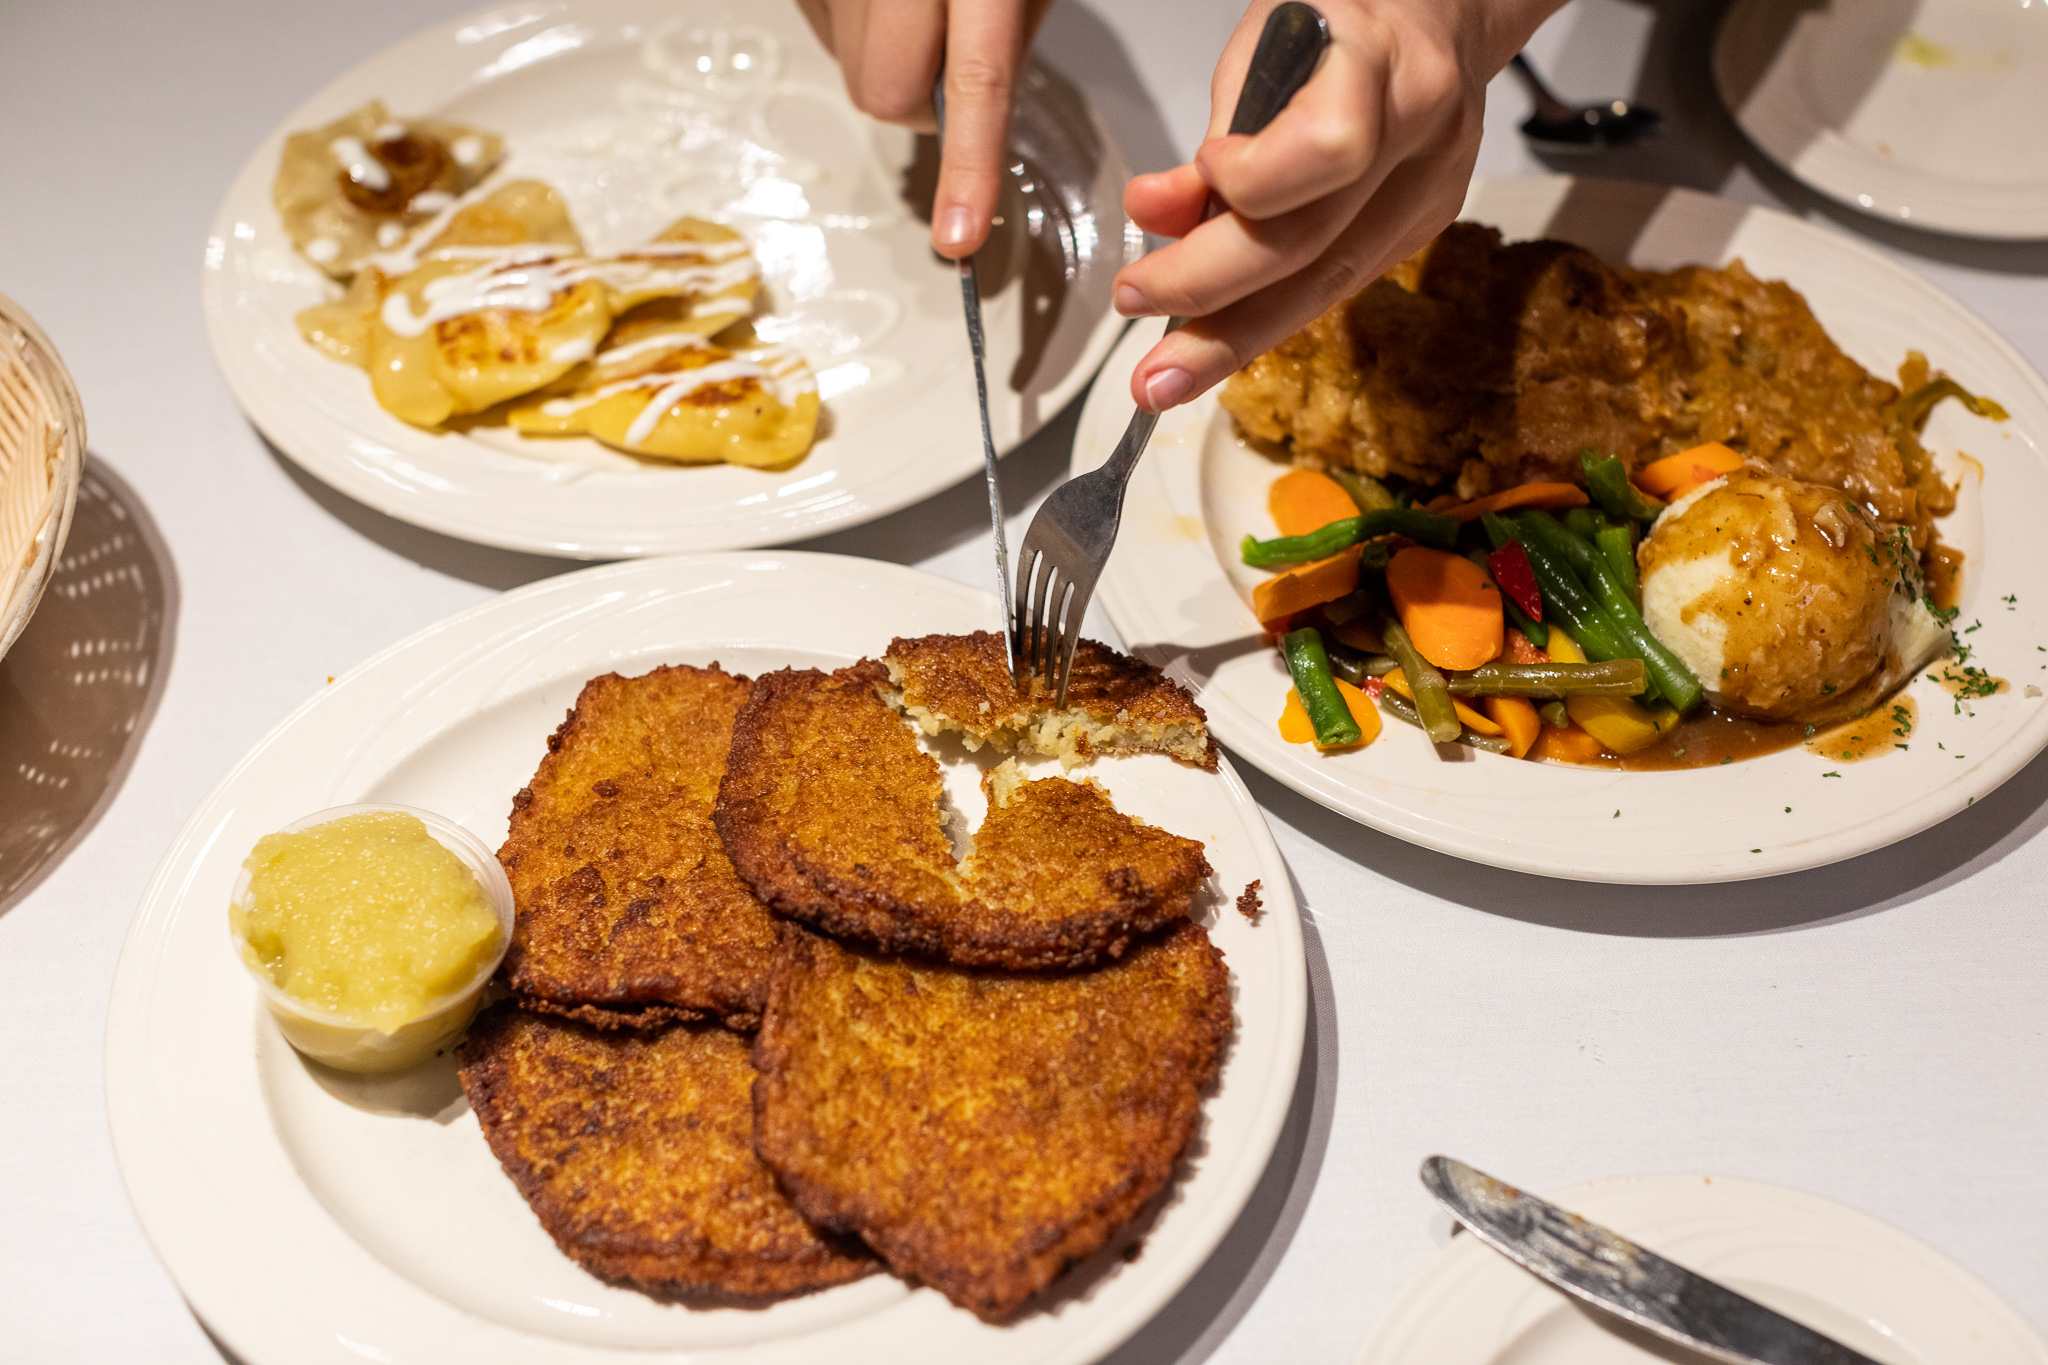 A pair of white hands use a fork and knife to slice off a piece of potato pancake on a plate with apple sauce. It's surrounded by plates of pierogi and city chicken with mashed potatoes and steamed veggies.